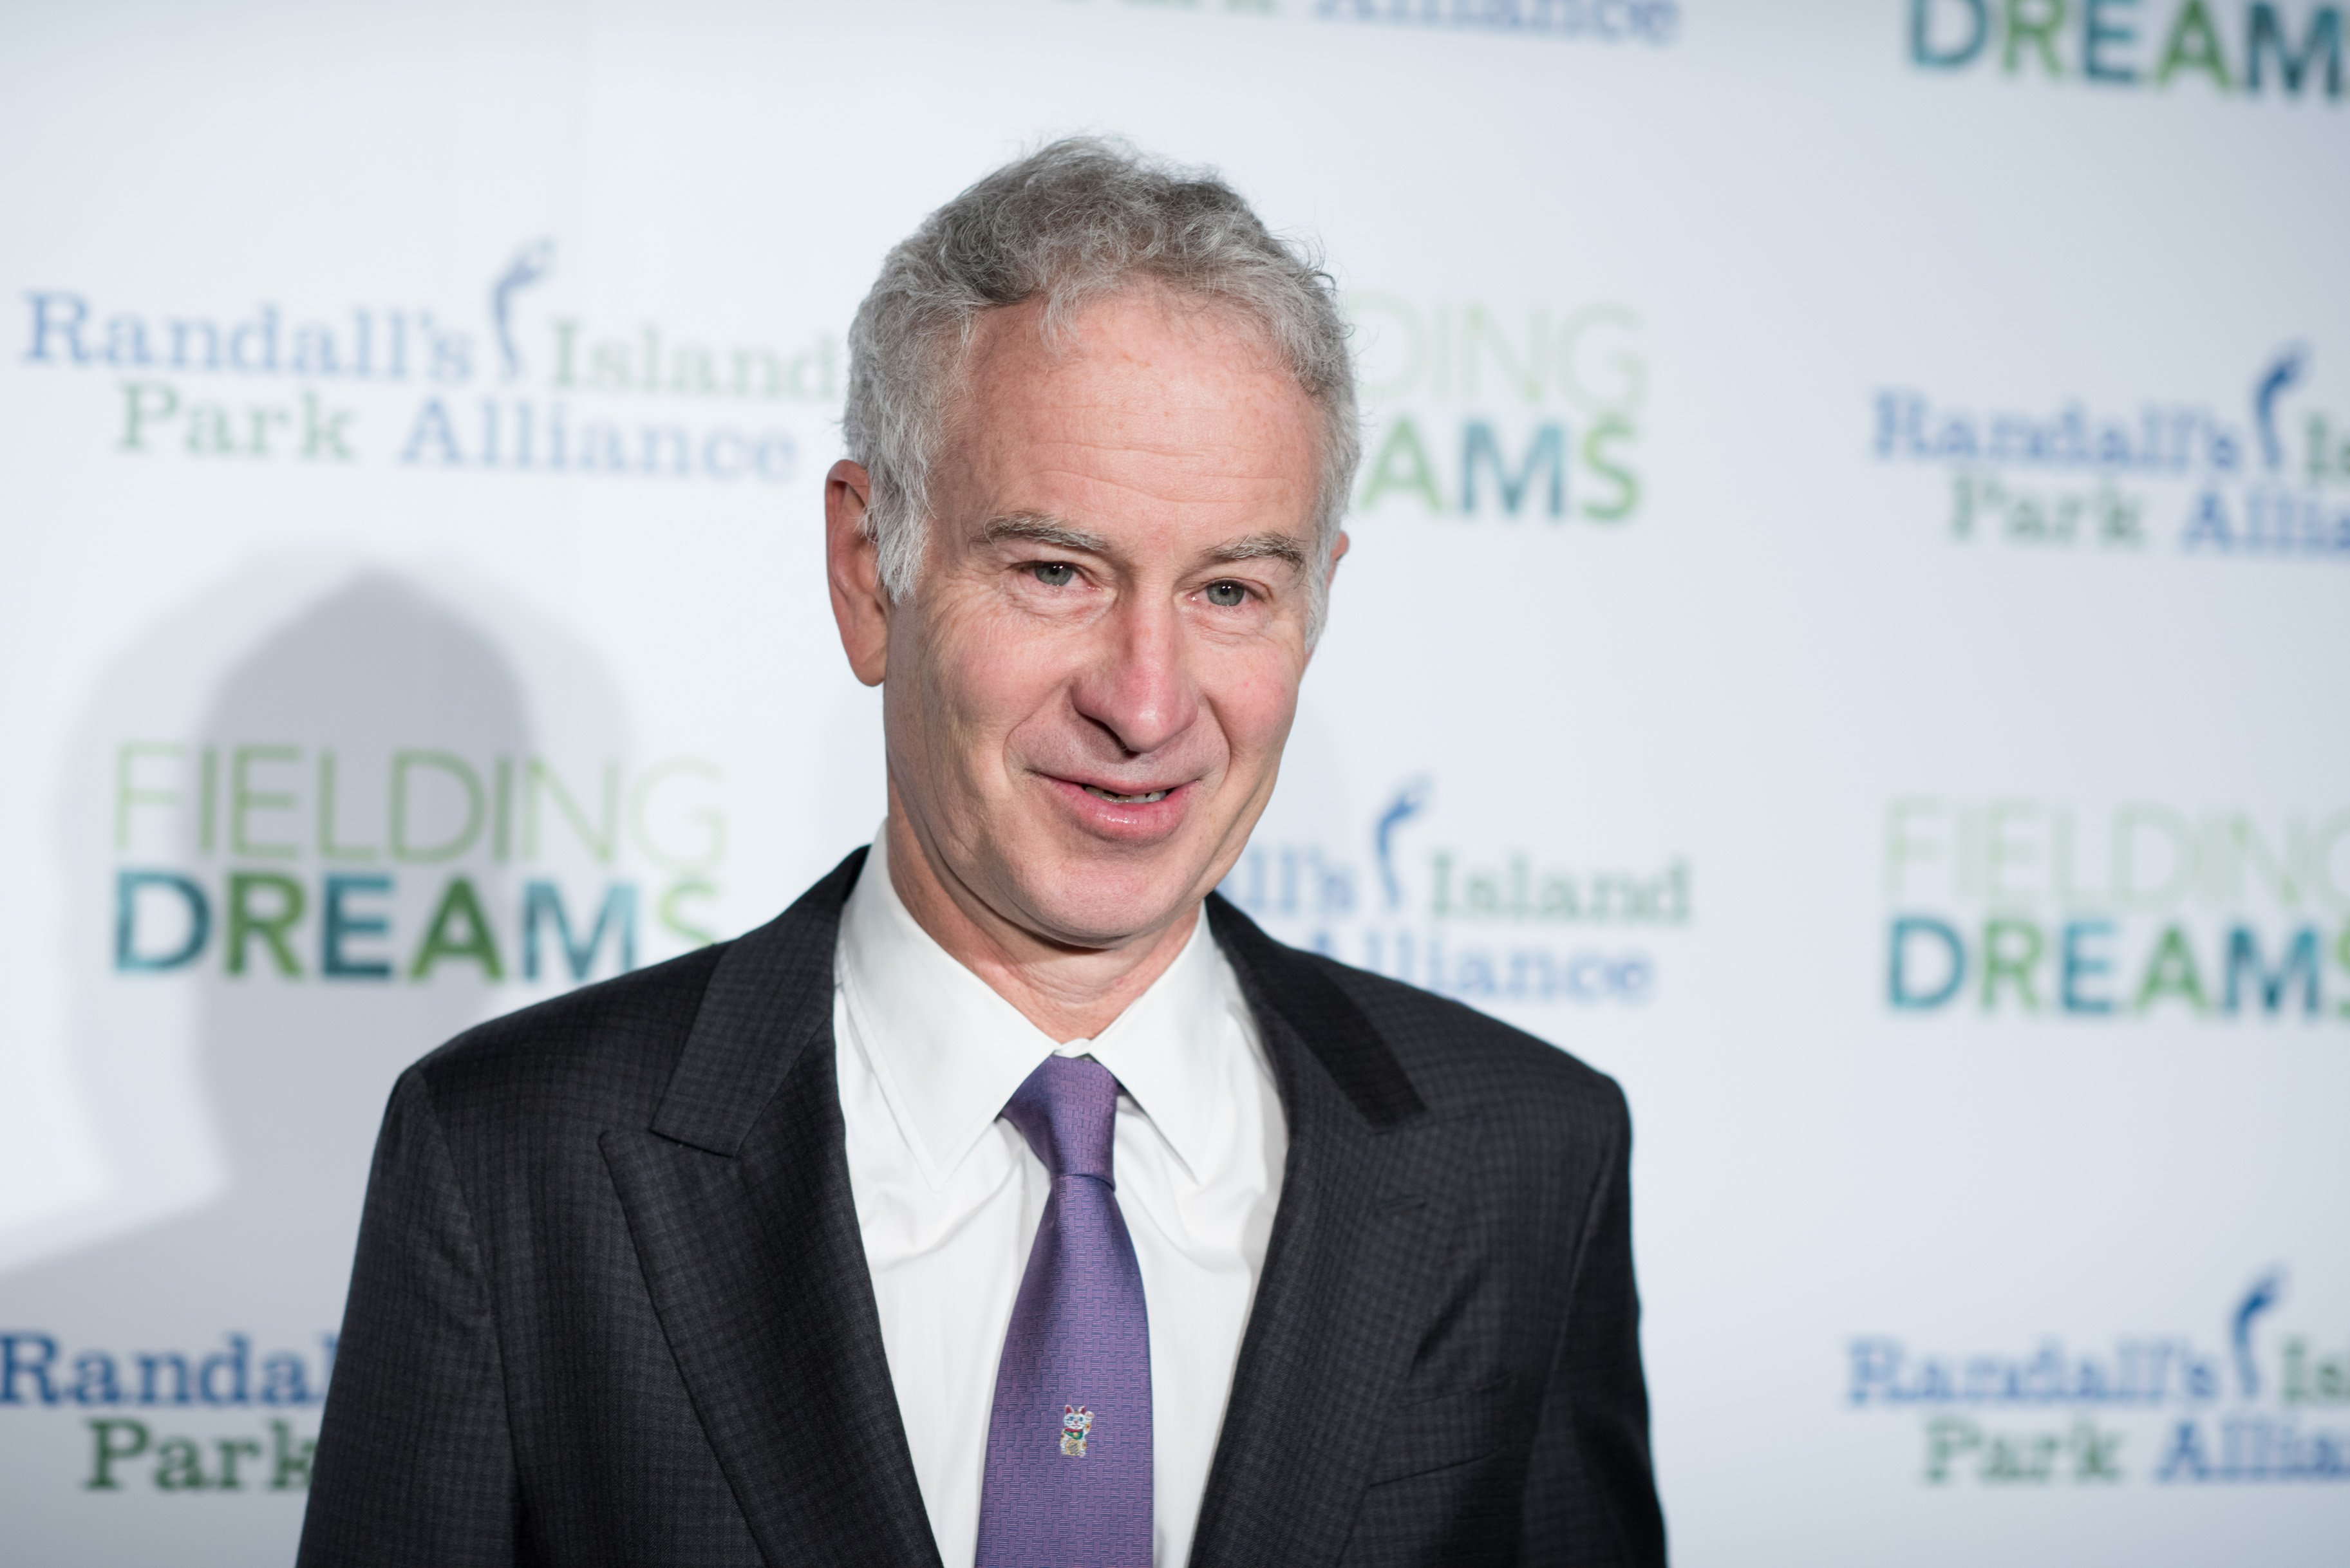 John McEnroe attends the 2016 Randall's Island Park Alliance Fielding Dreams Gala on March 8, 2016 in New York City. | Photo: Getty Images